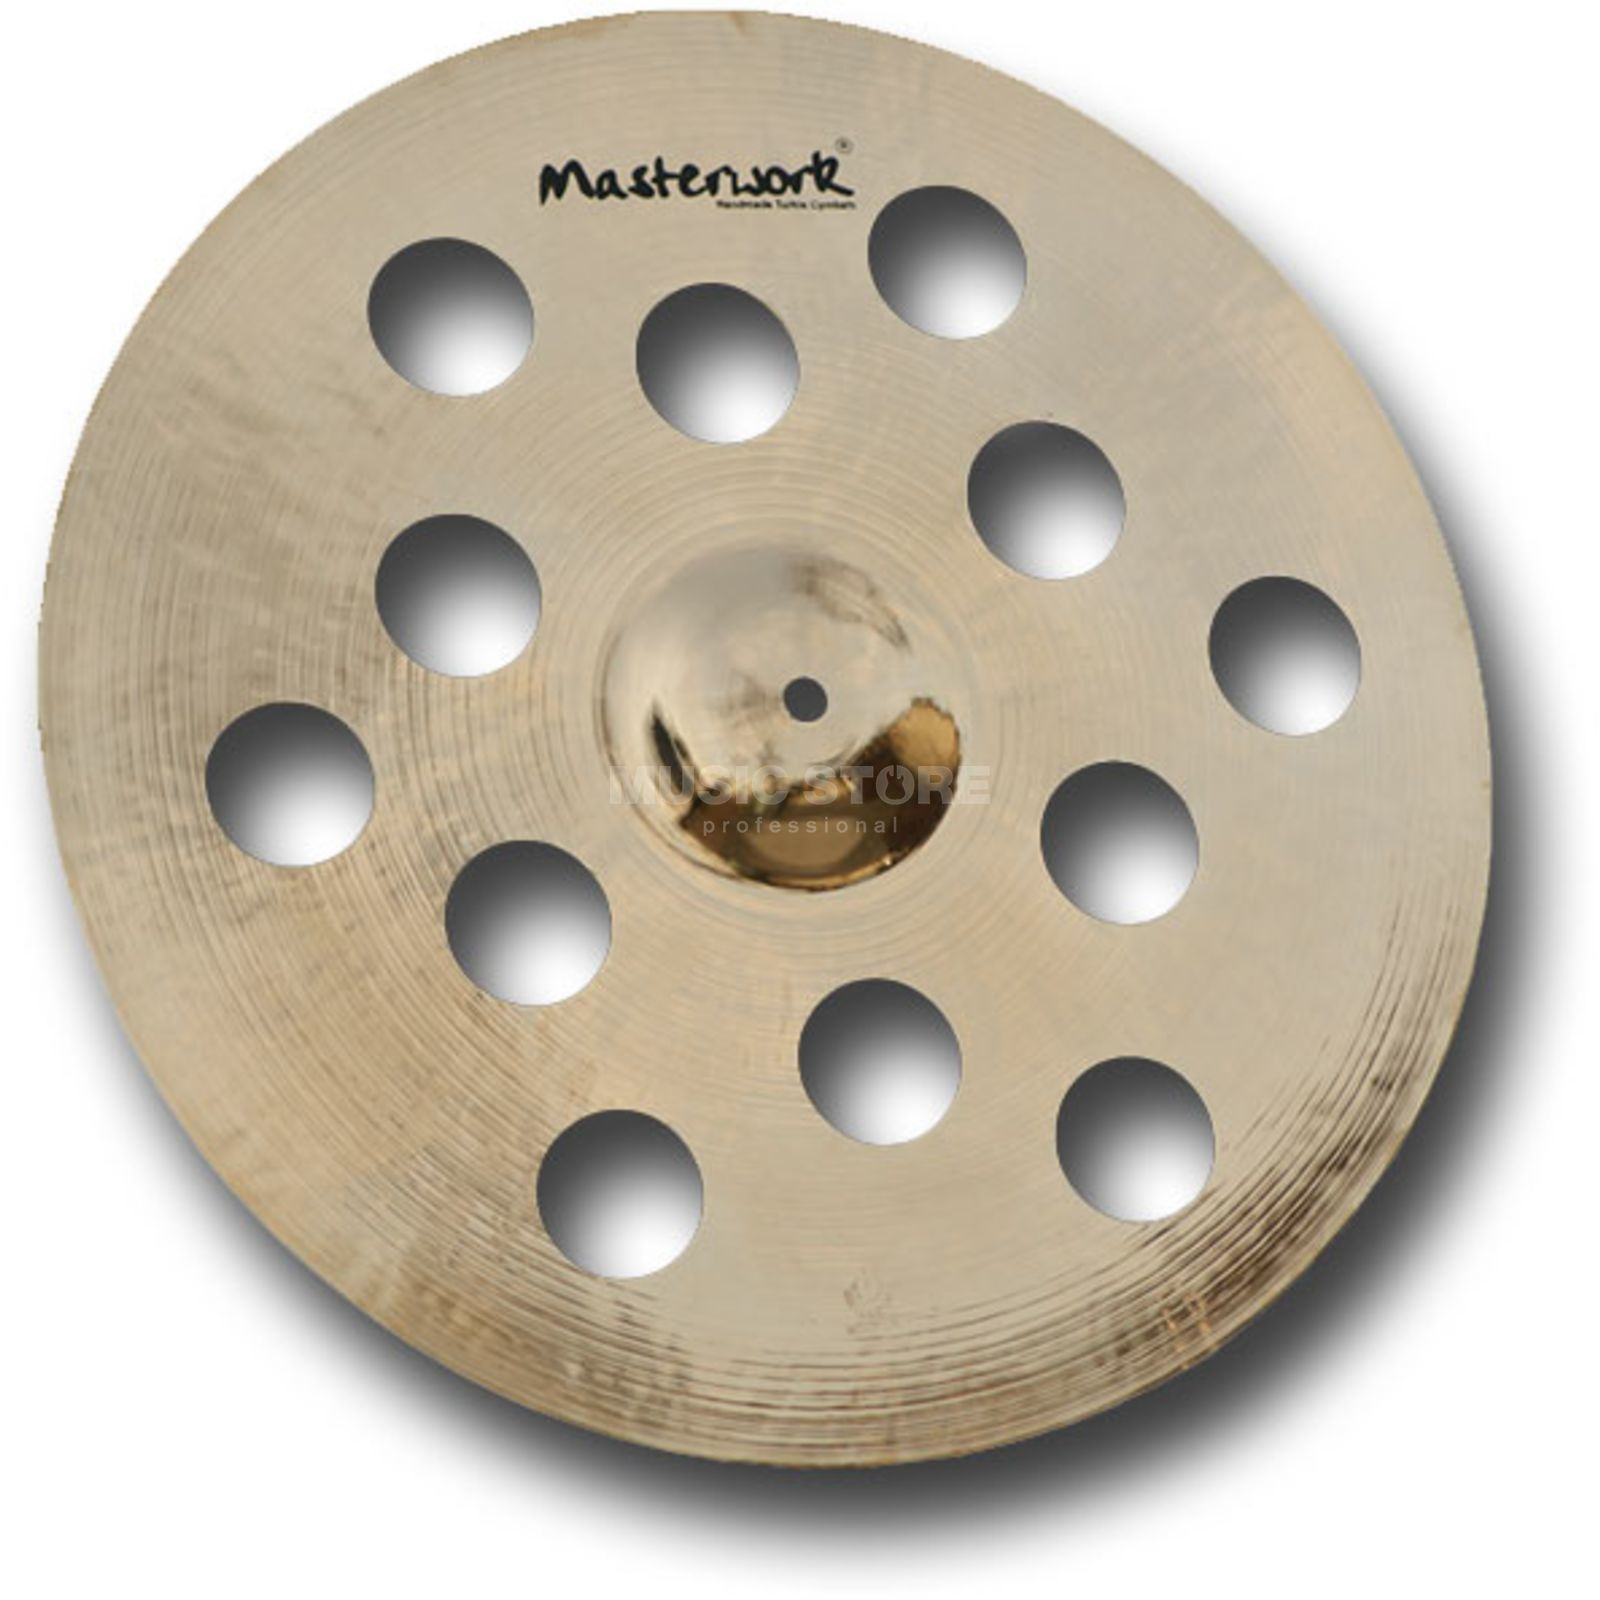 "Masterwork Resonant FX Crash 16"", Brilliant Finish Produktbild"